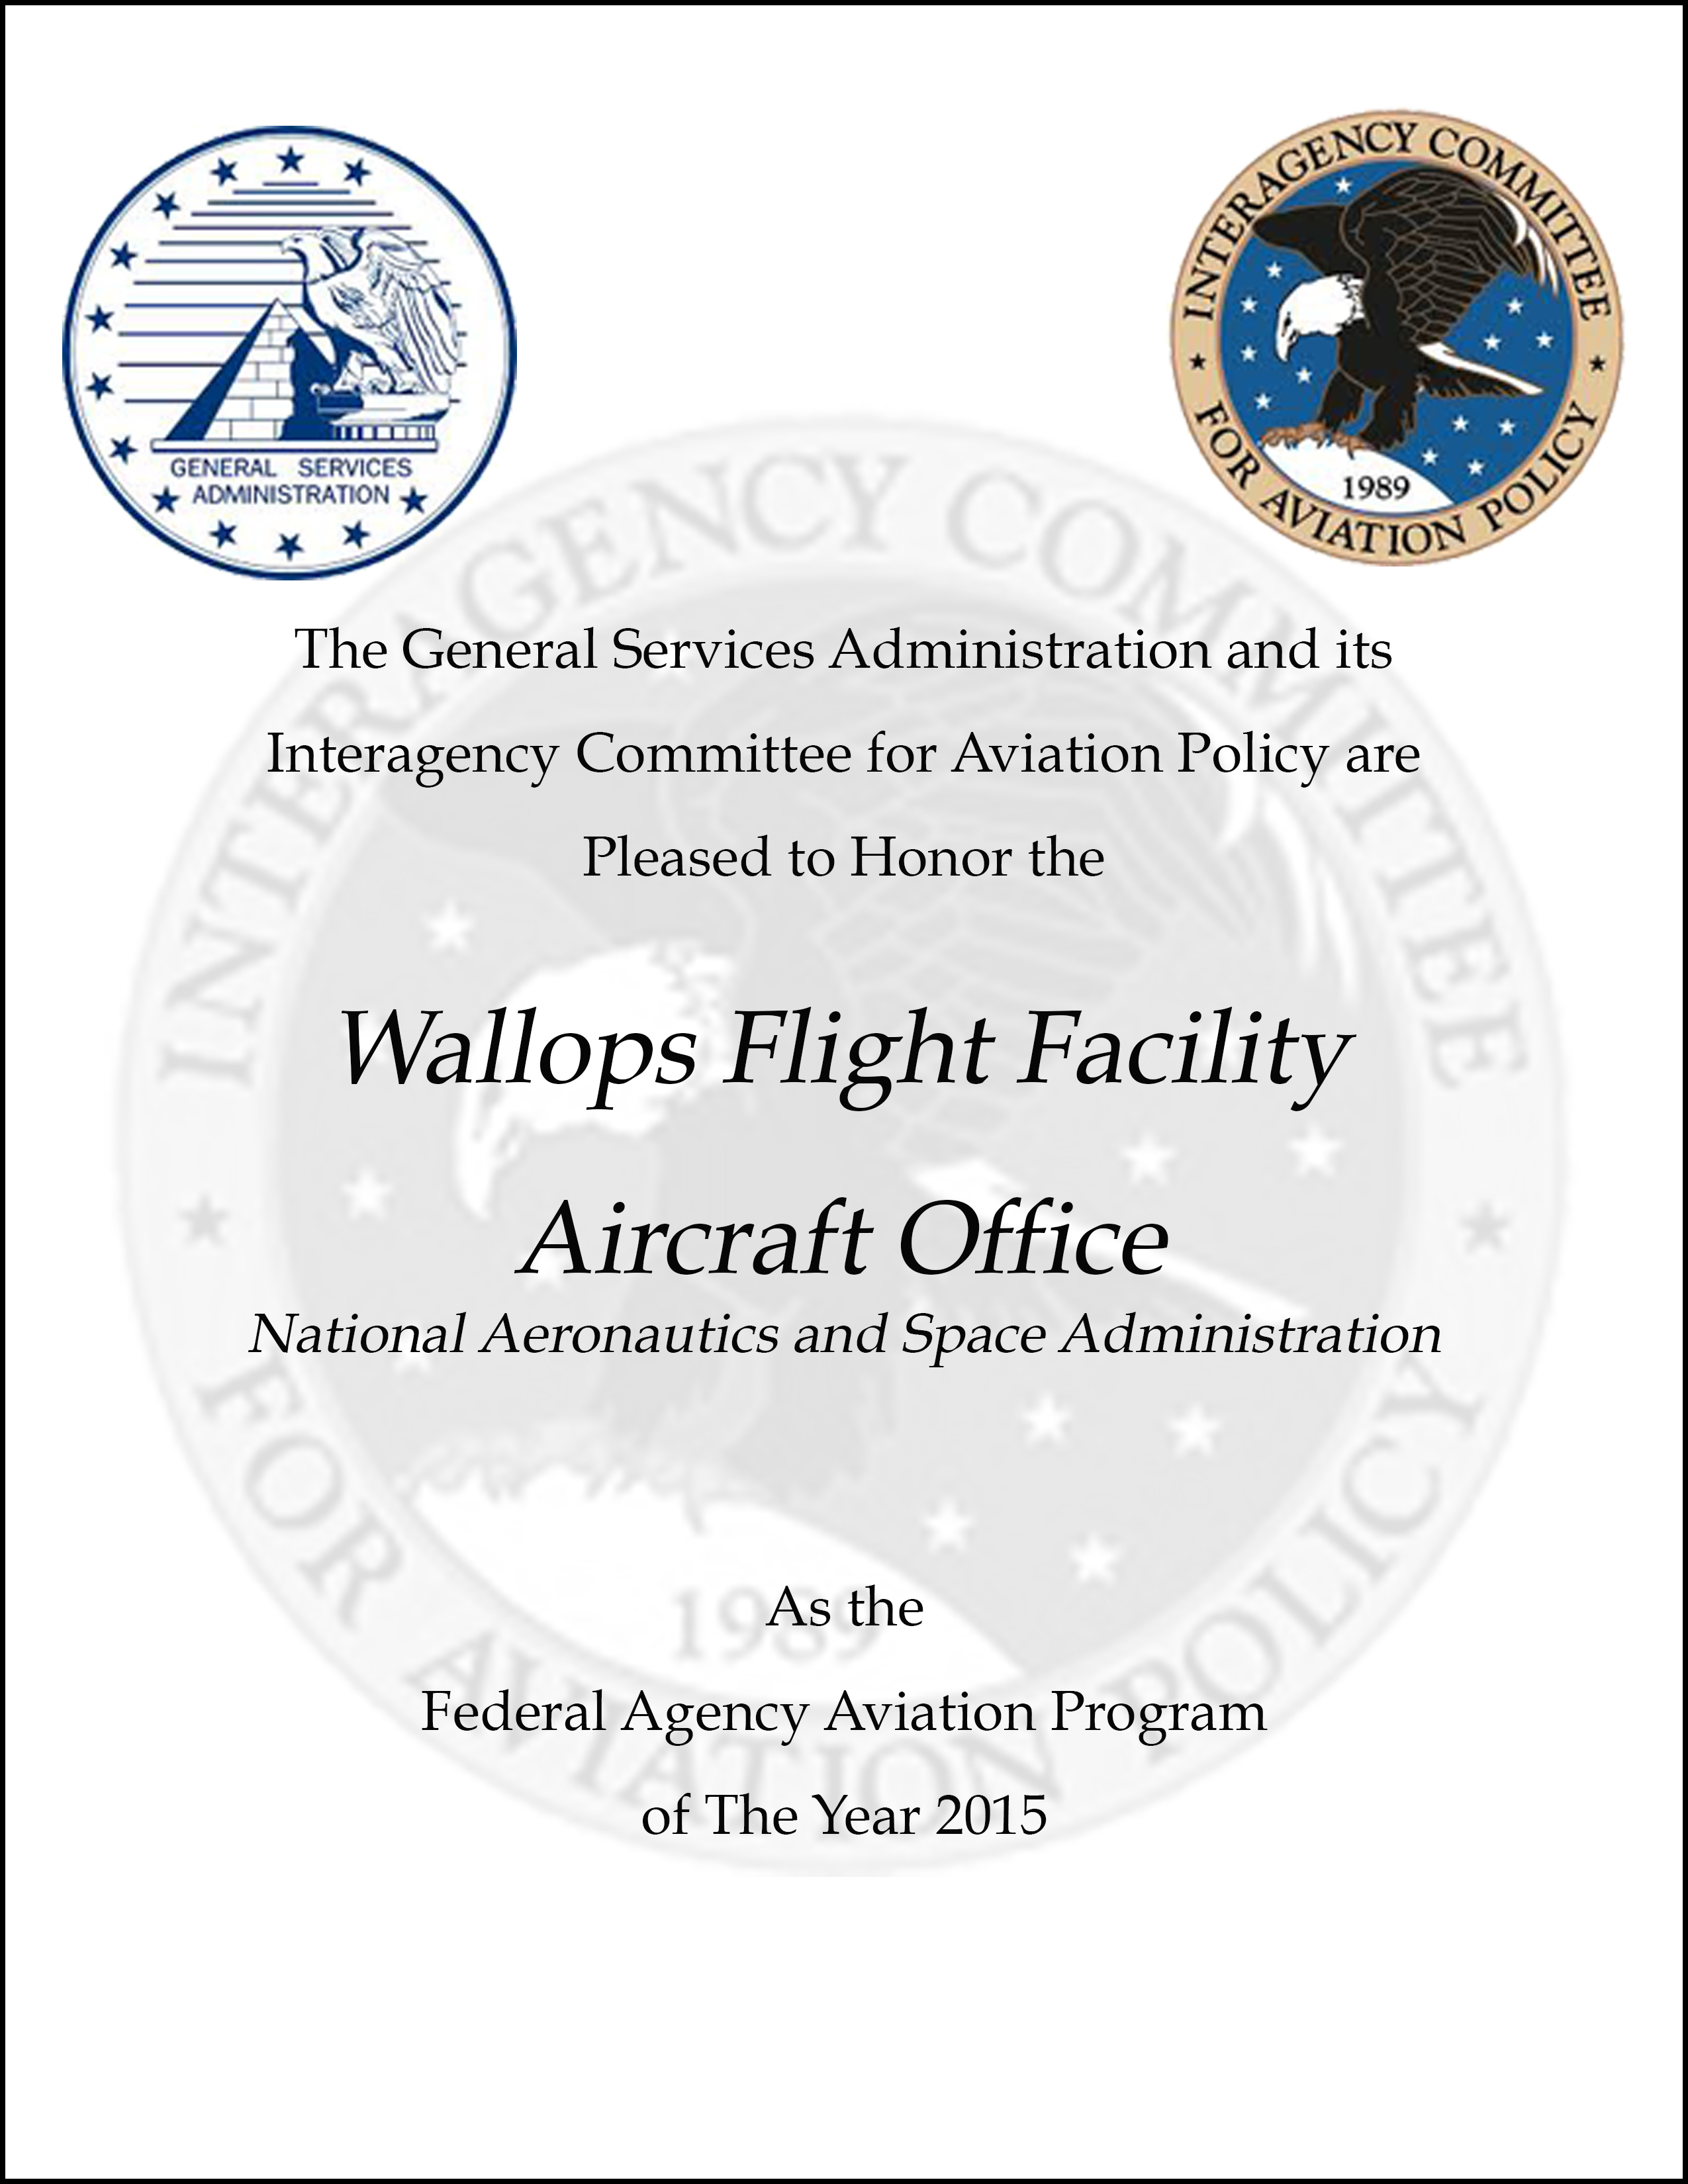 Wallops Aircraft Office Recognized as Best in the Federal